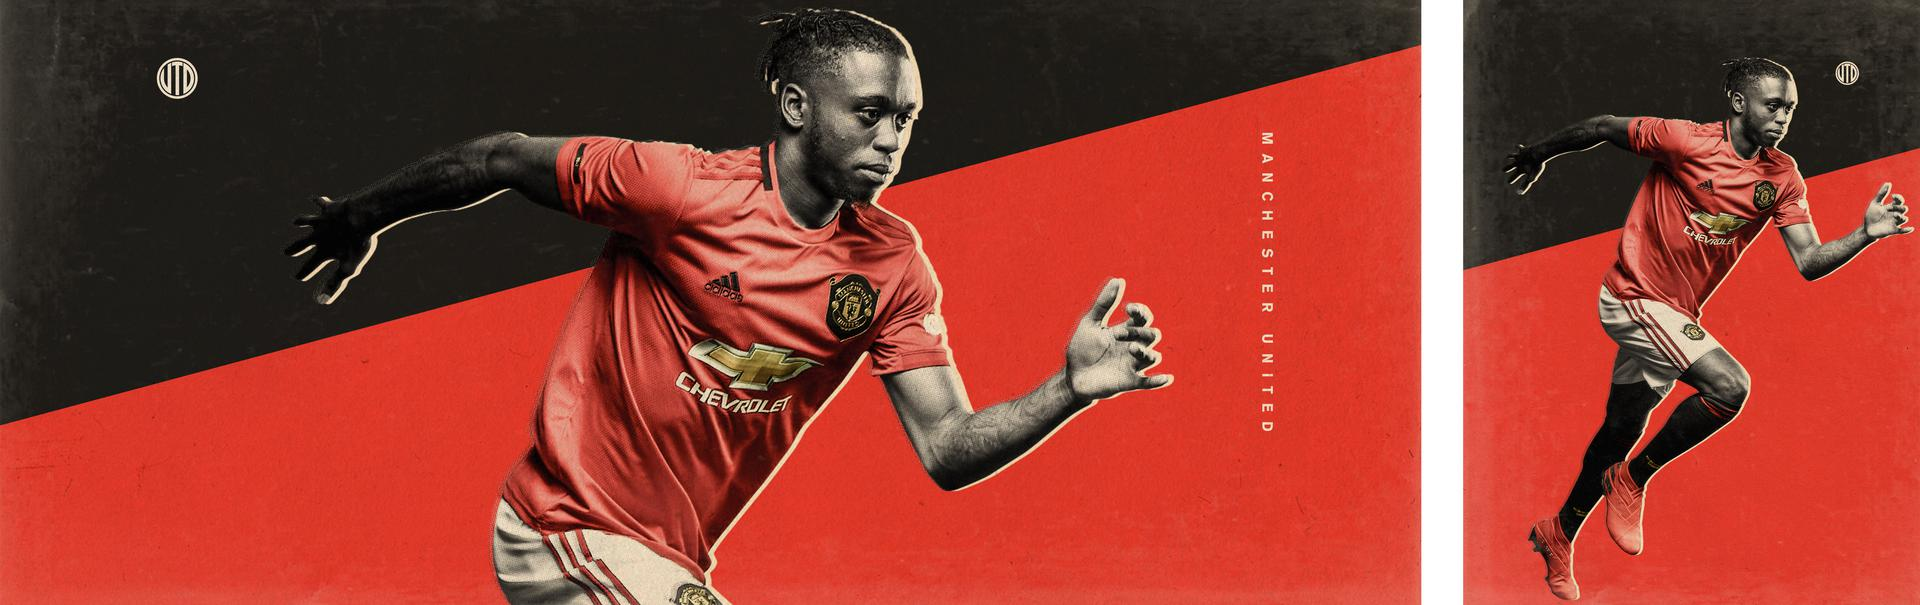 Promotional graphic to announce Aaron Wan-Bissaka as a new signing for Manchester United